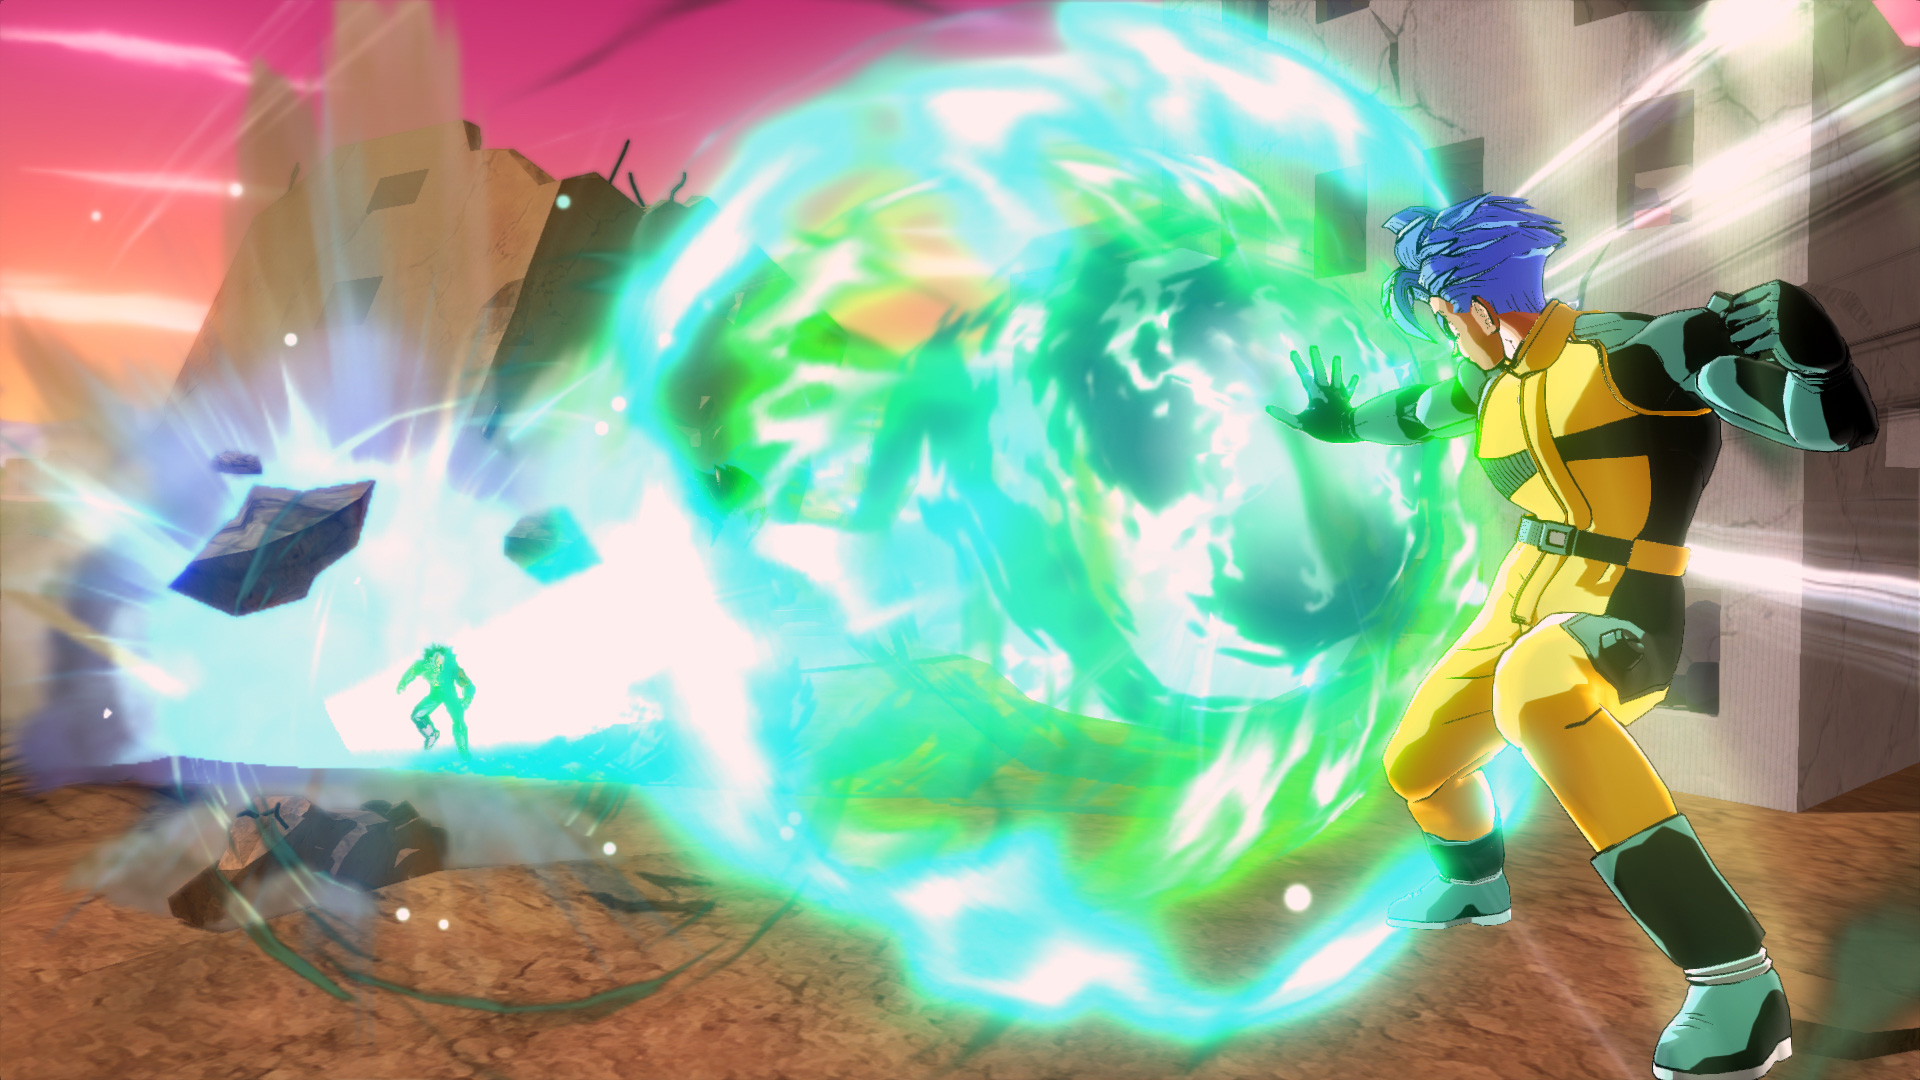 Dragon-Ball-Xenoverse-Screenshot-Misc-4